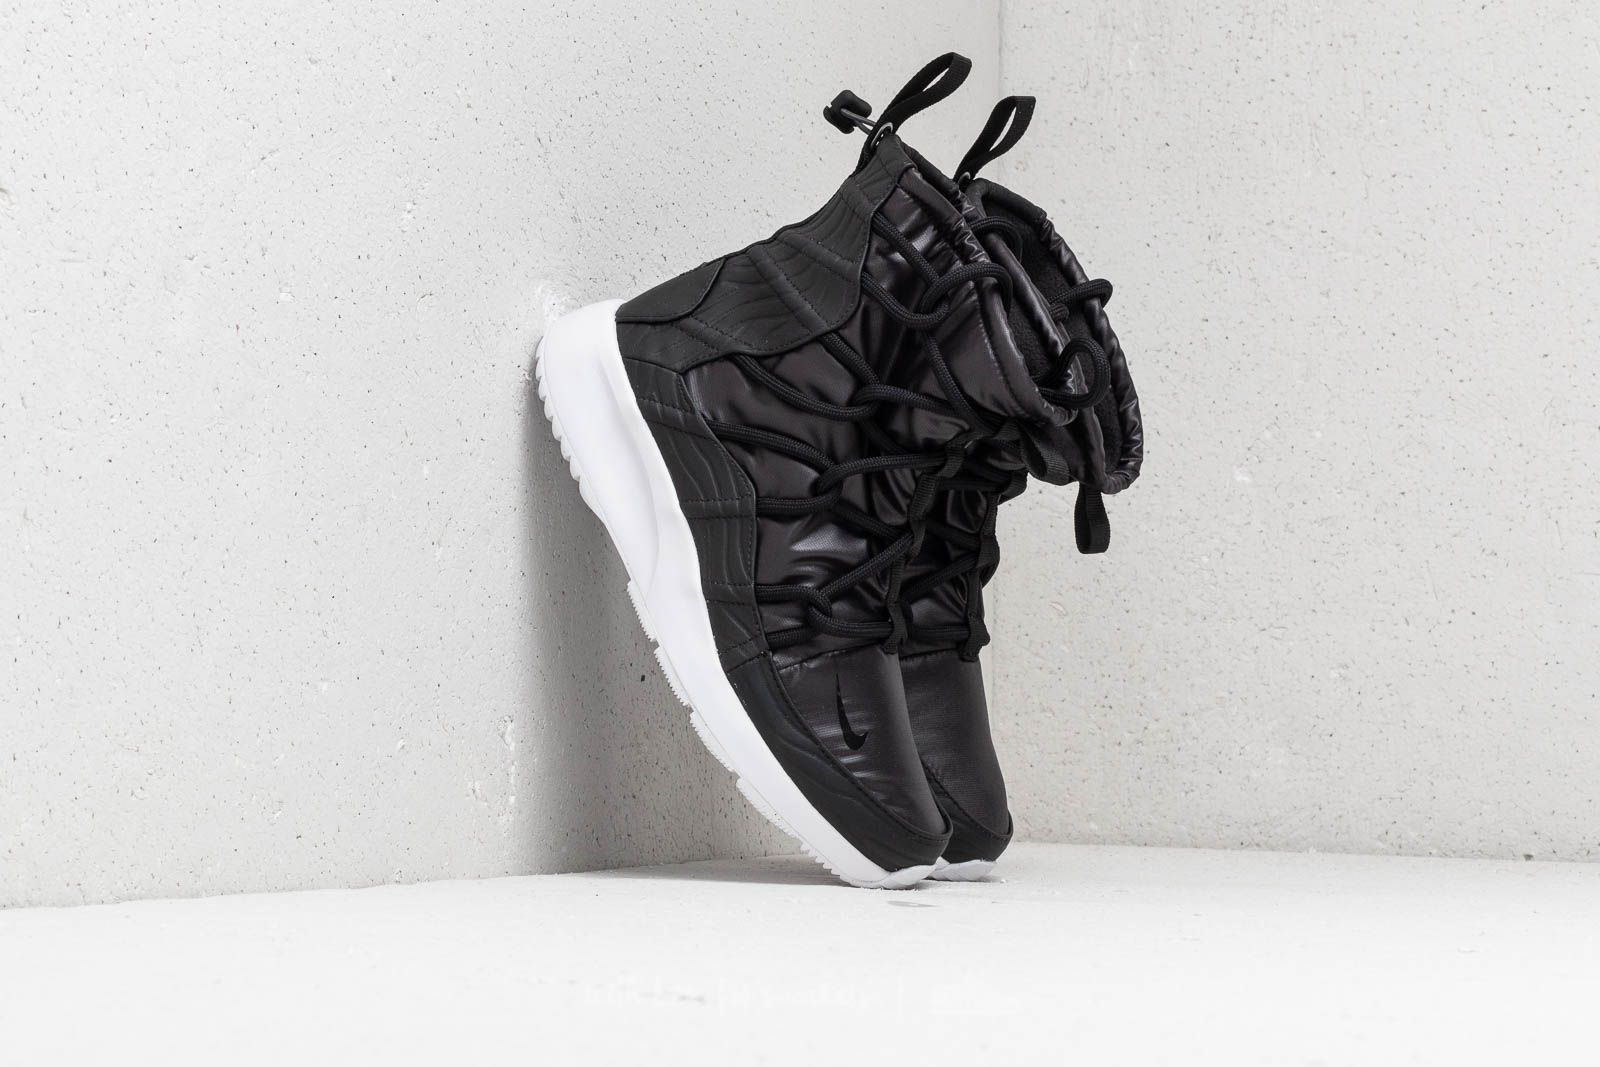 Nike Wmns Tanjun High Rise Black/ Black-Anthracite-White